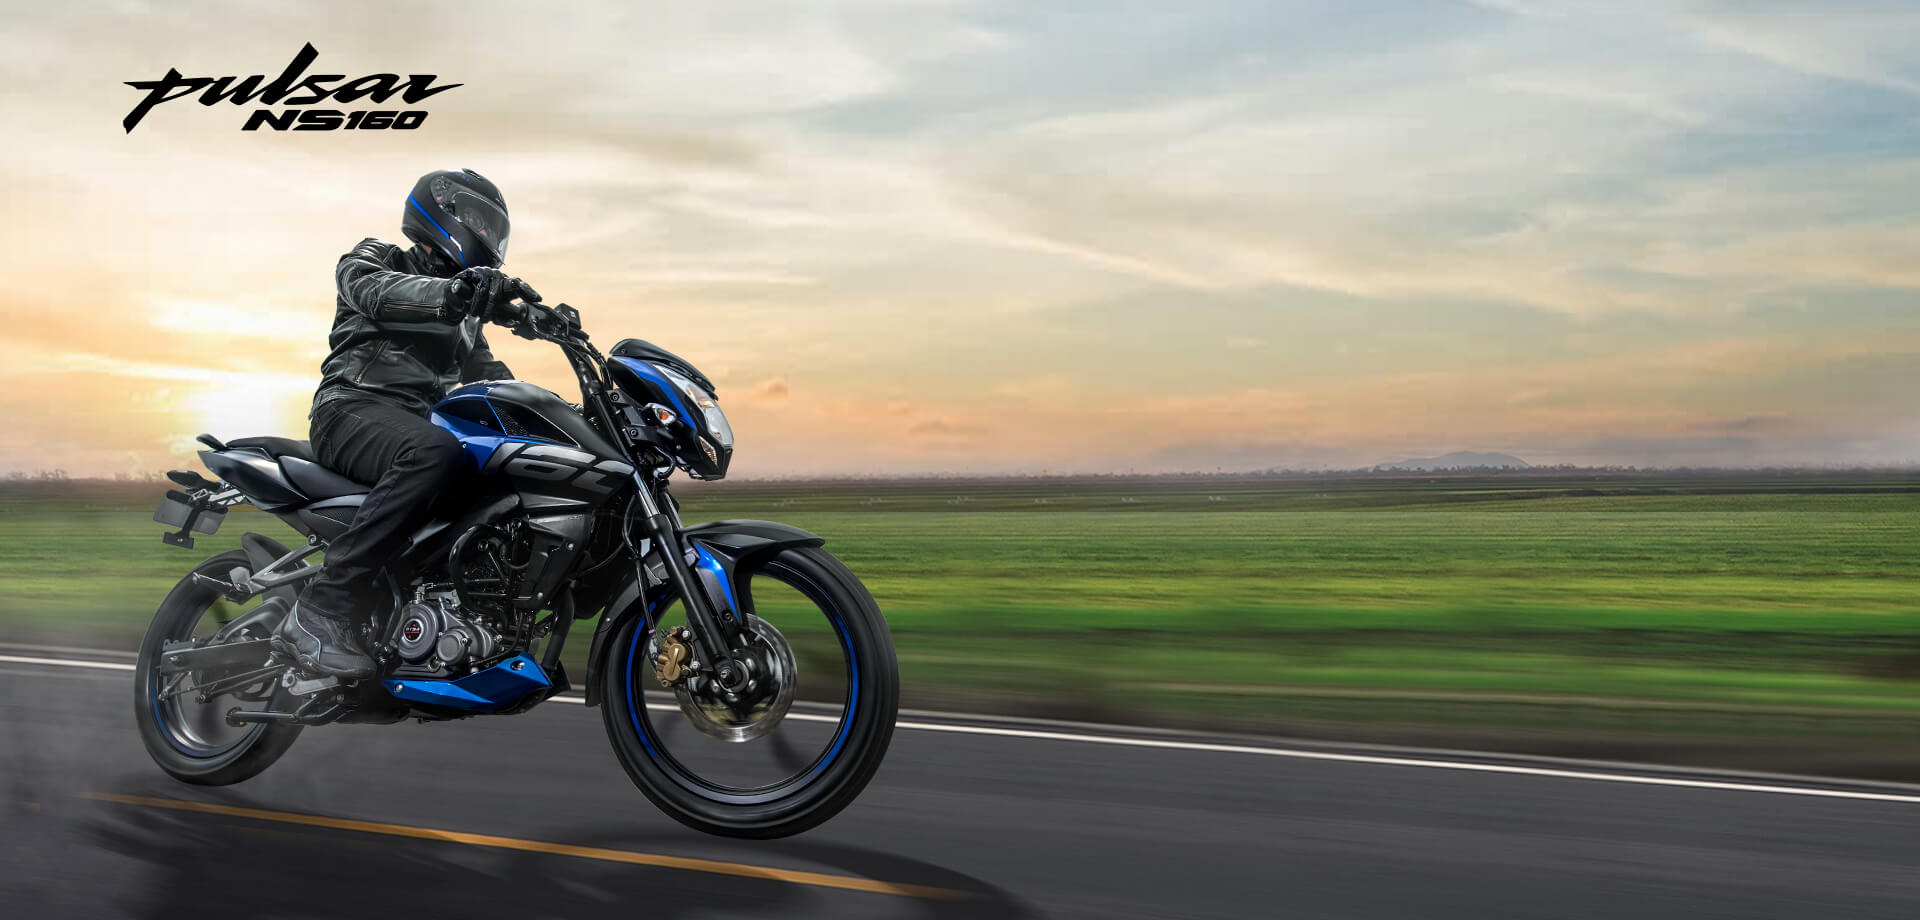 The Sharpest Rides >> Bajaj Pulsar NS 160 Price, Mileage, Reviews ...